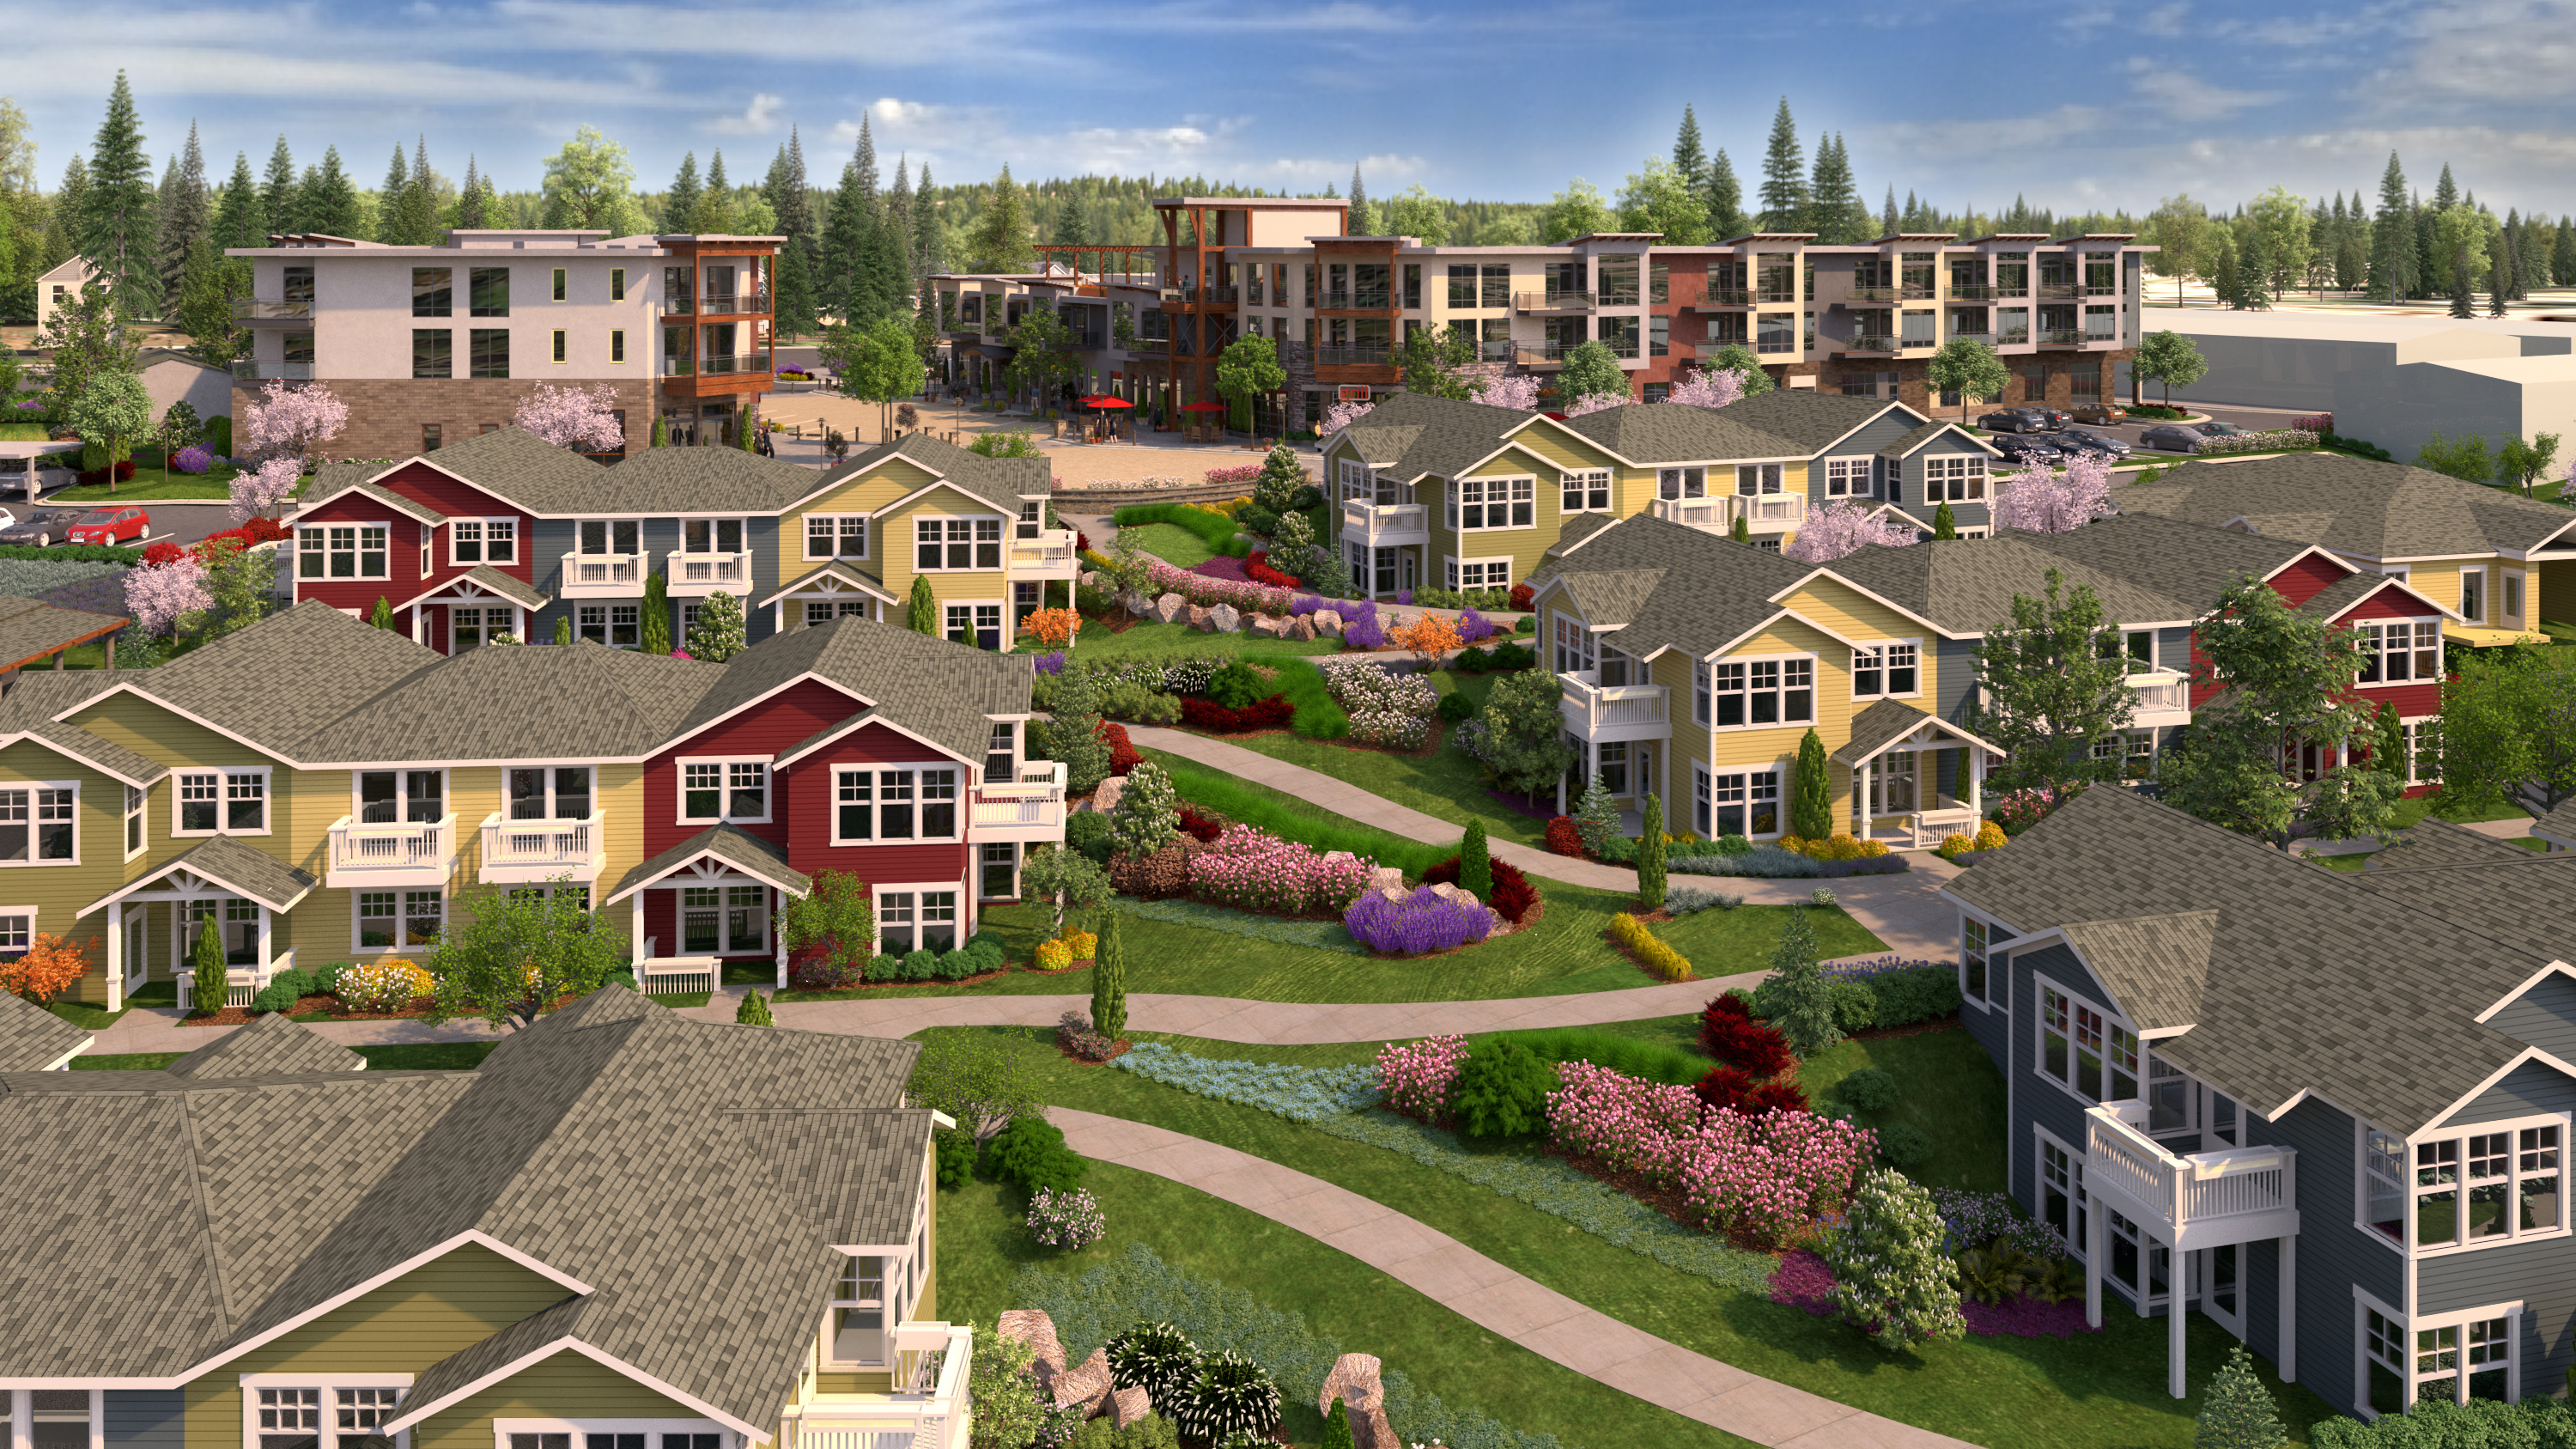 Rose Villa Redevelopment Project Rendering. (Photo: Business Wire)